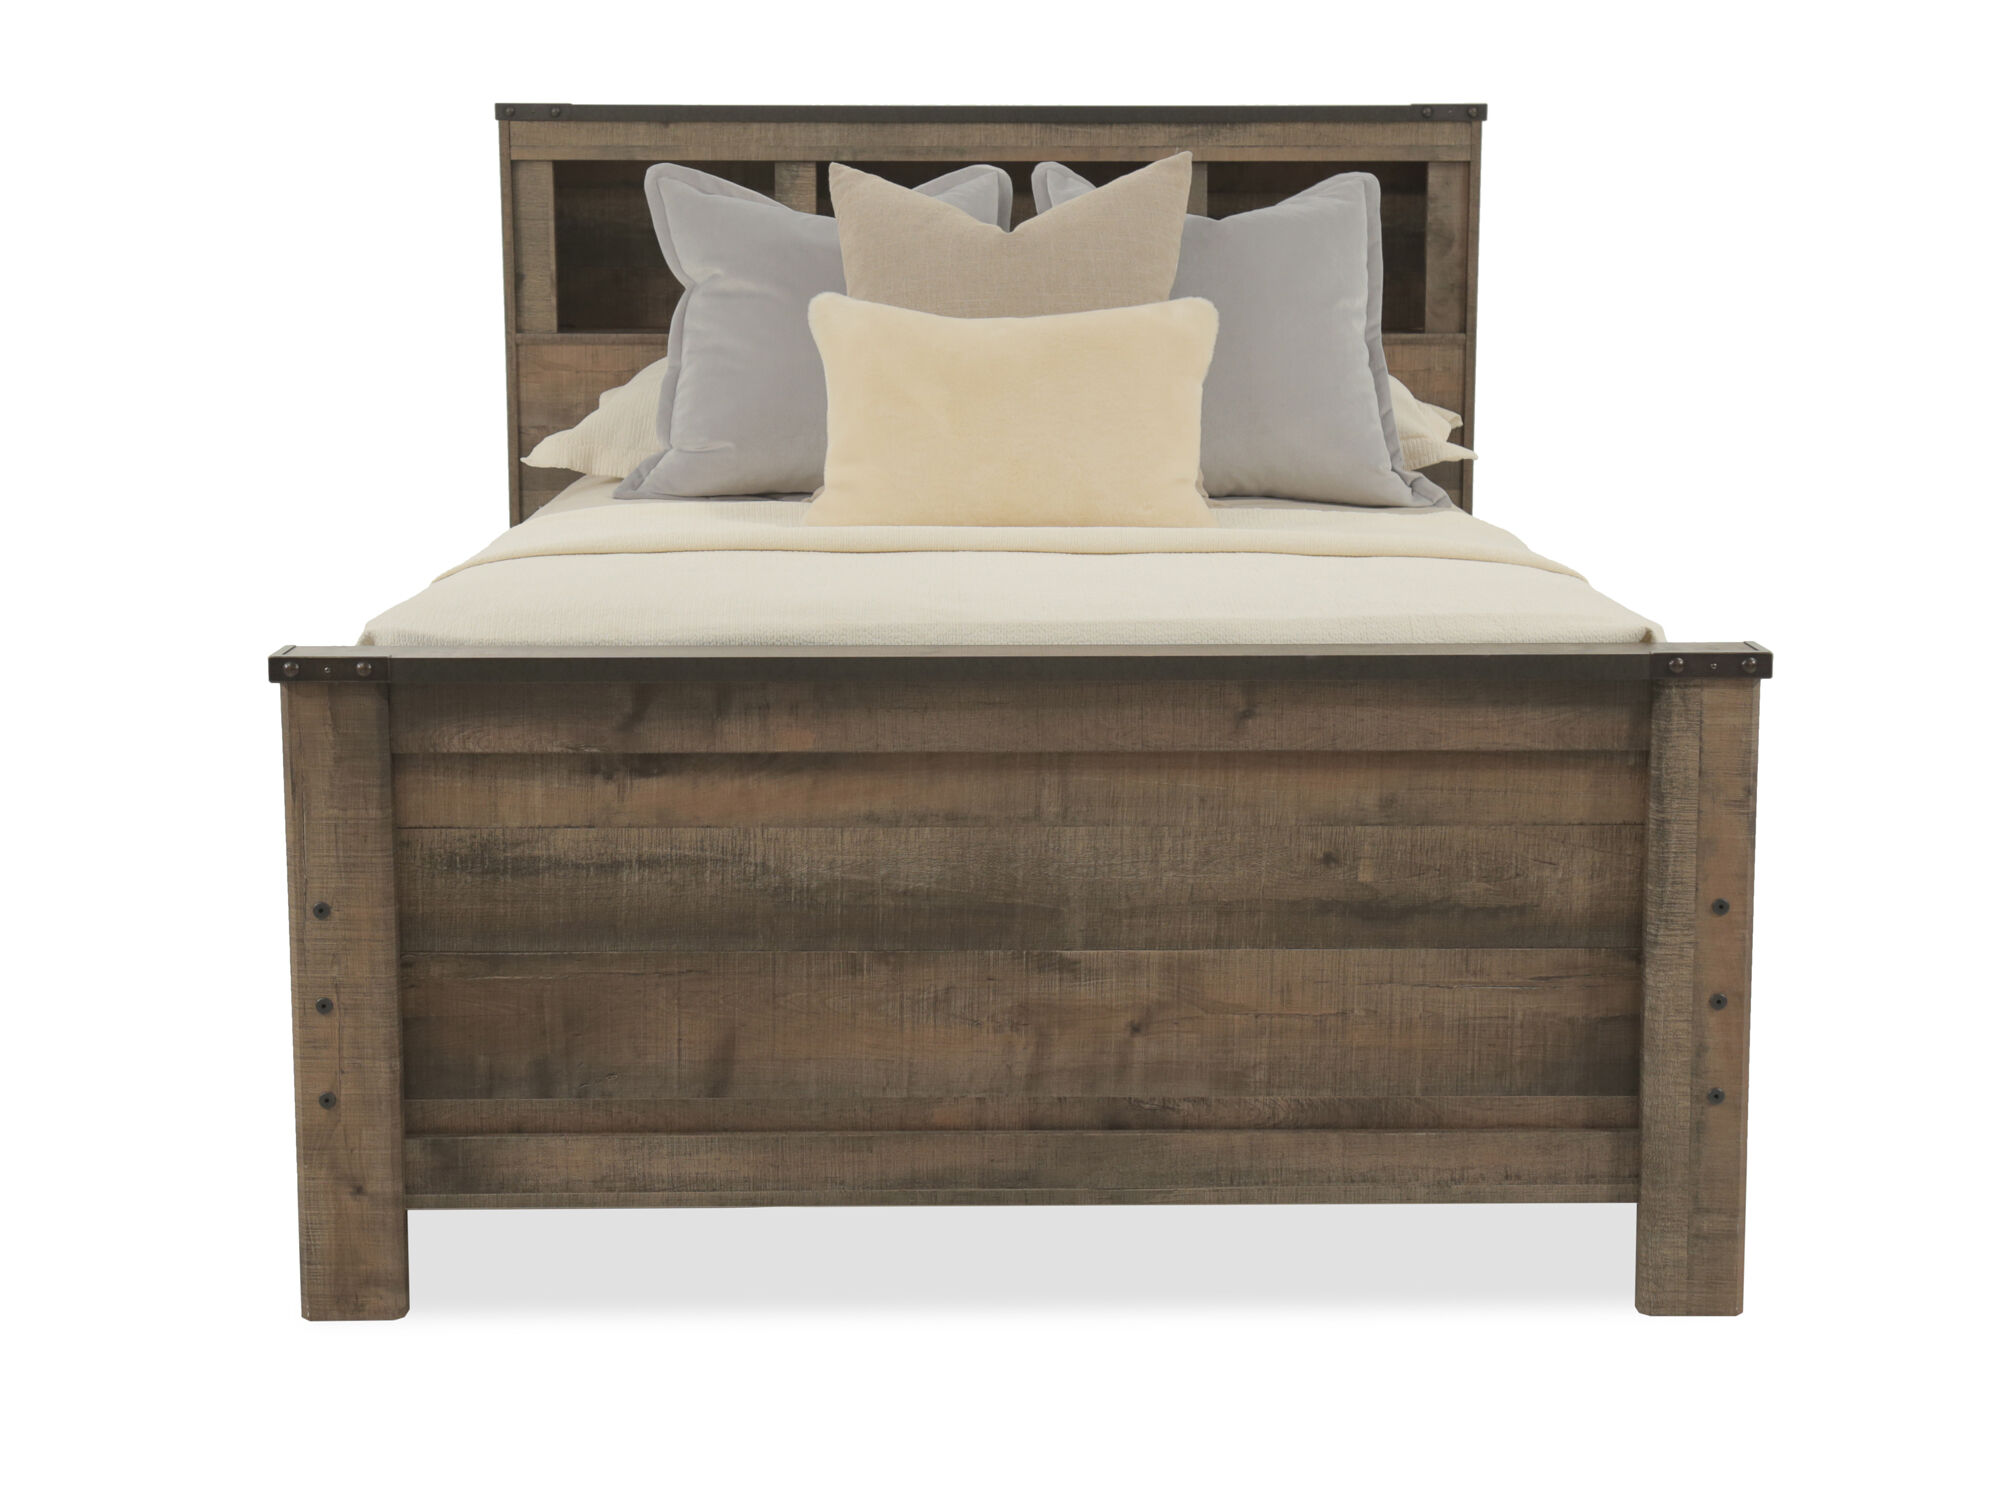 Rustic Farmhouse Planked Youth Bookcase Bed with Storage in Brown ...